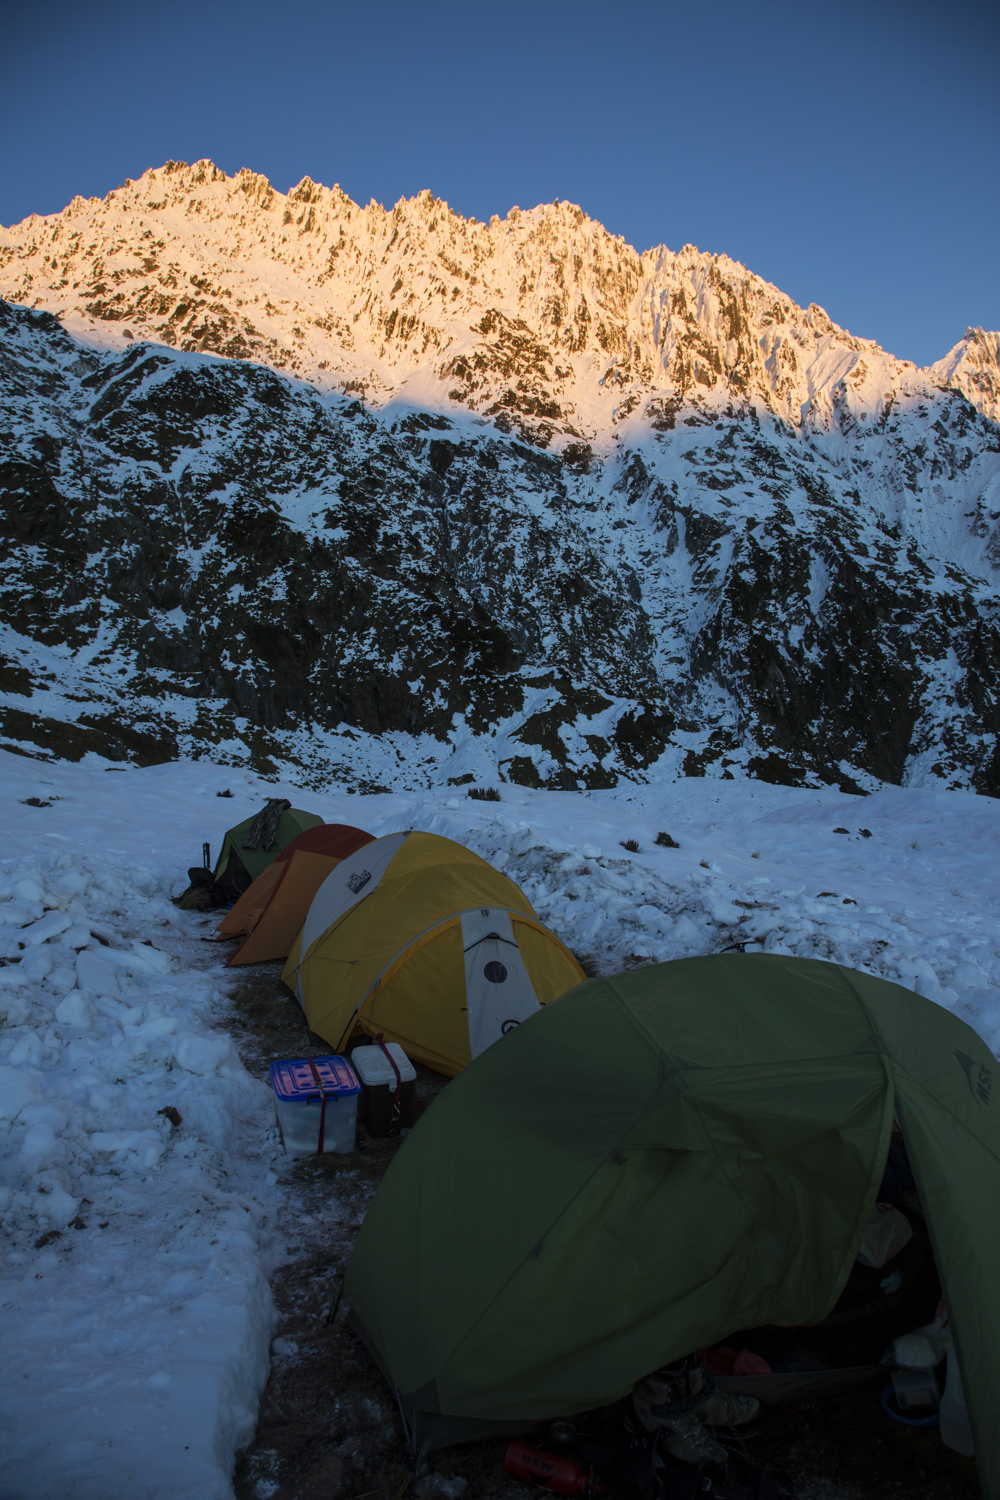 By using the right equipment and understanding the snowpack, we managed to take a bull from just below the skyline.